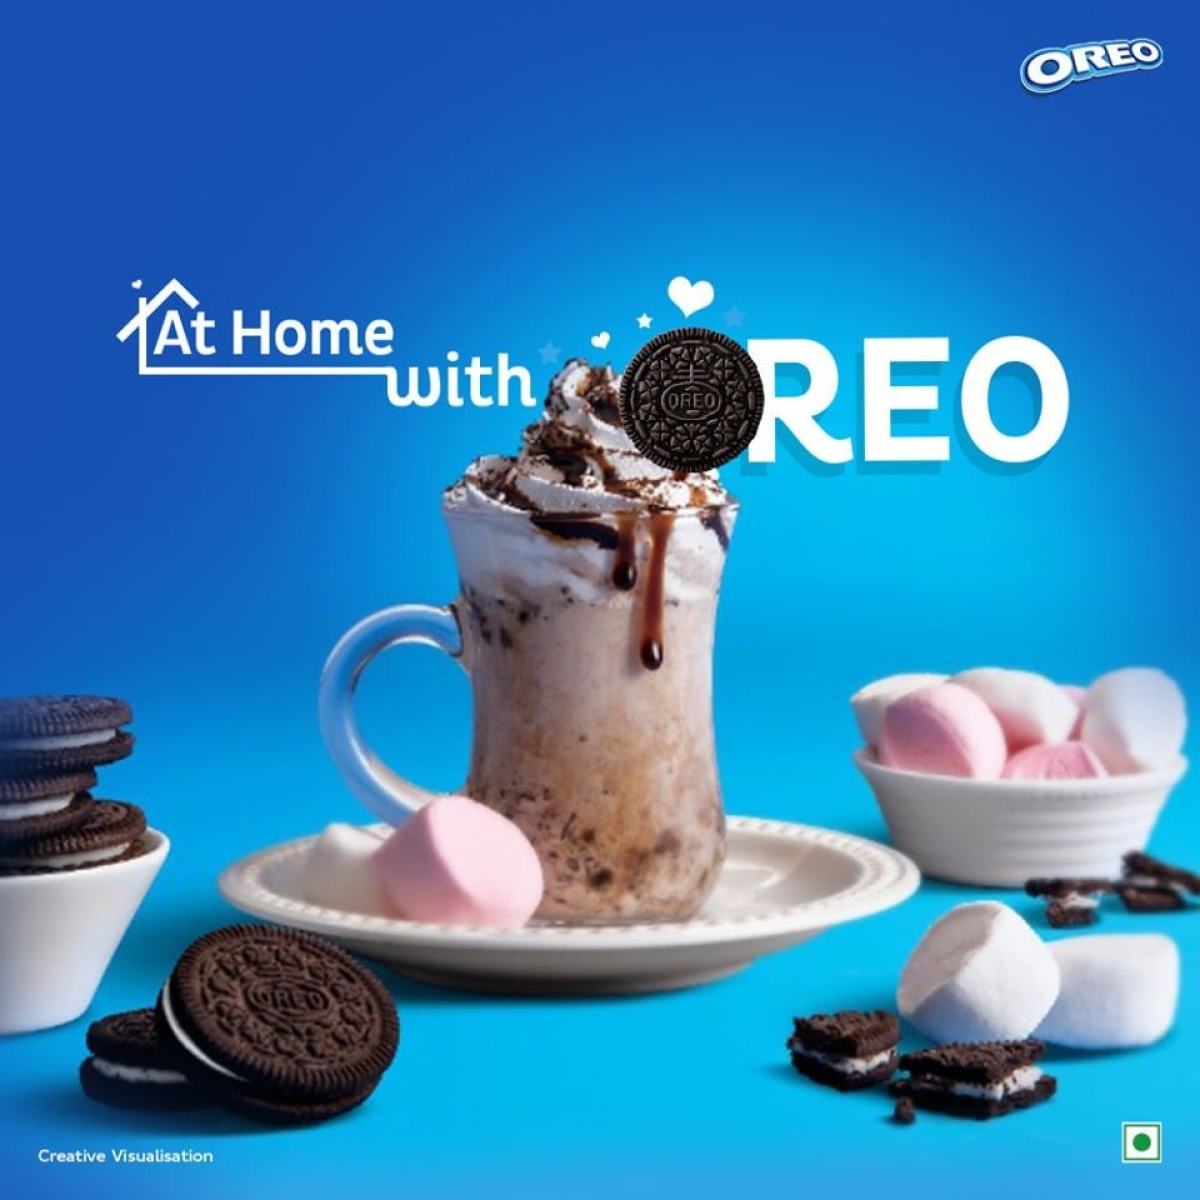 Oreo's 'at home' campaign asks kids, adults to make the most of WFH